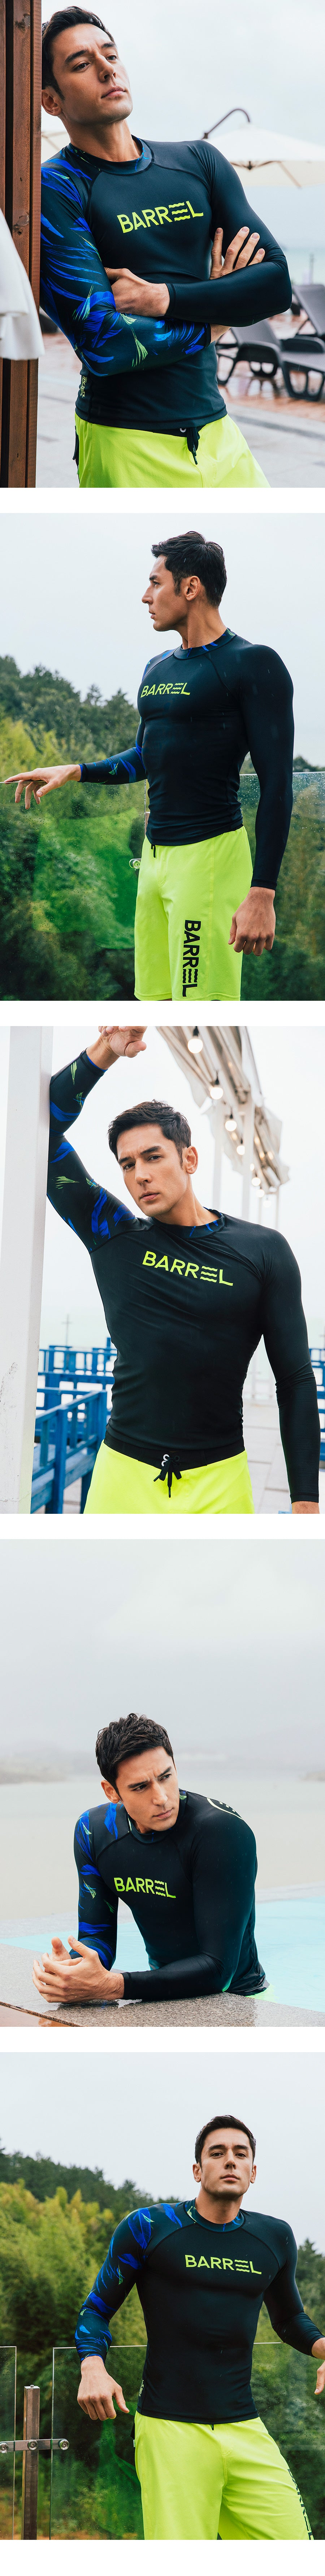 Barrel Mens Odd Rashguard-BLACK_JulienKang